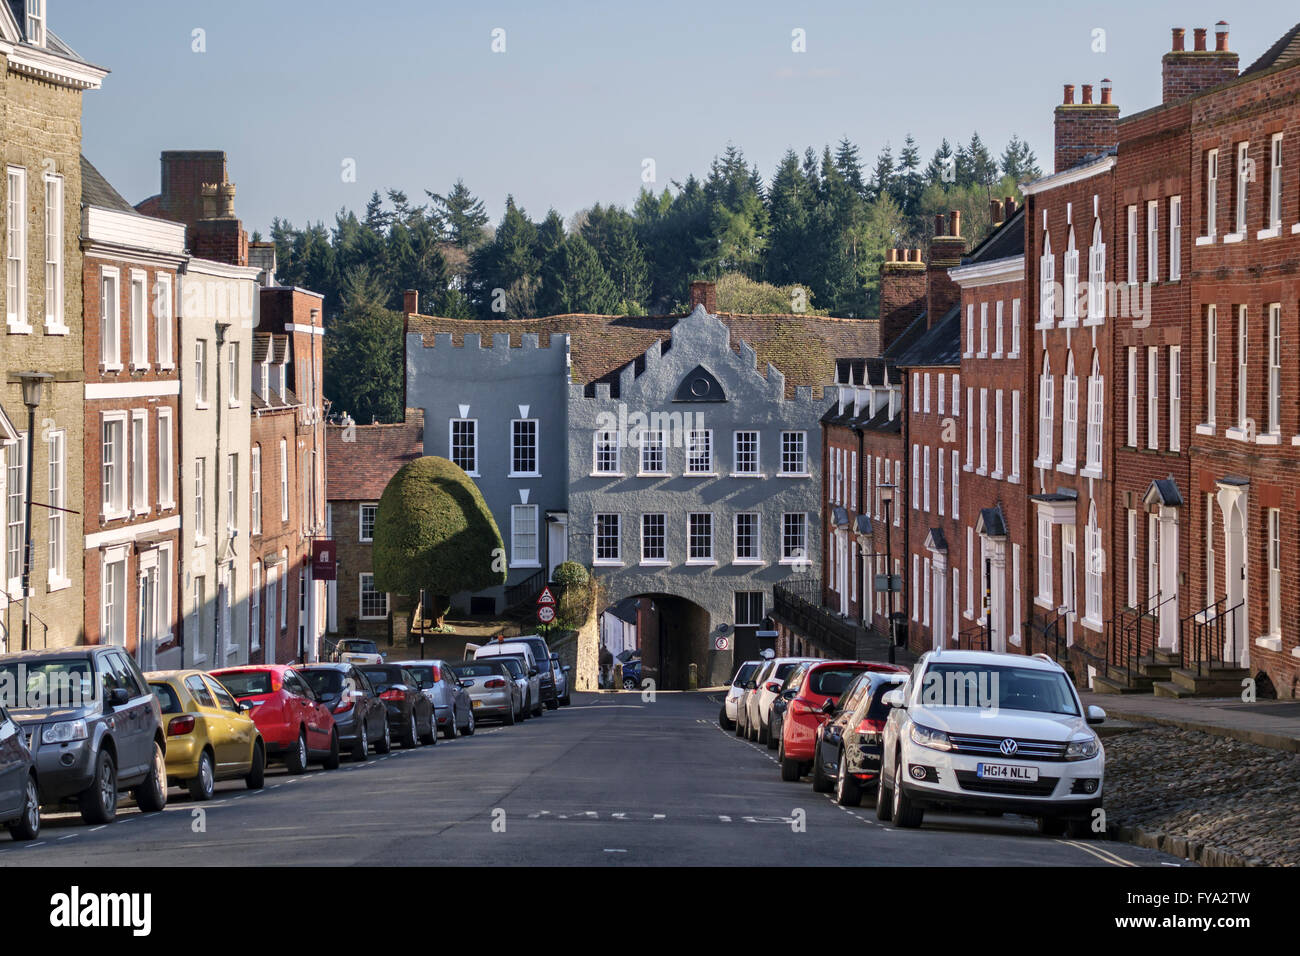 Ludlow, Shropshire, UK. The medieval Broad Gate (Broadgate) at the bottom of Broad Street was completed about 1270 - Stock Image